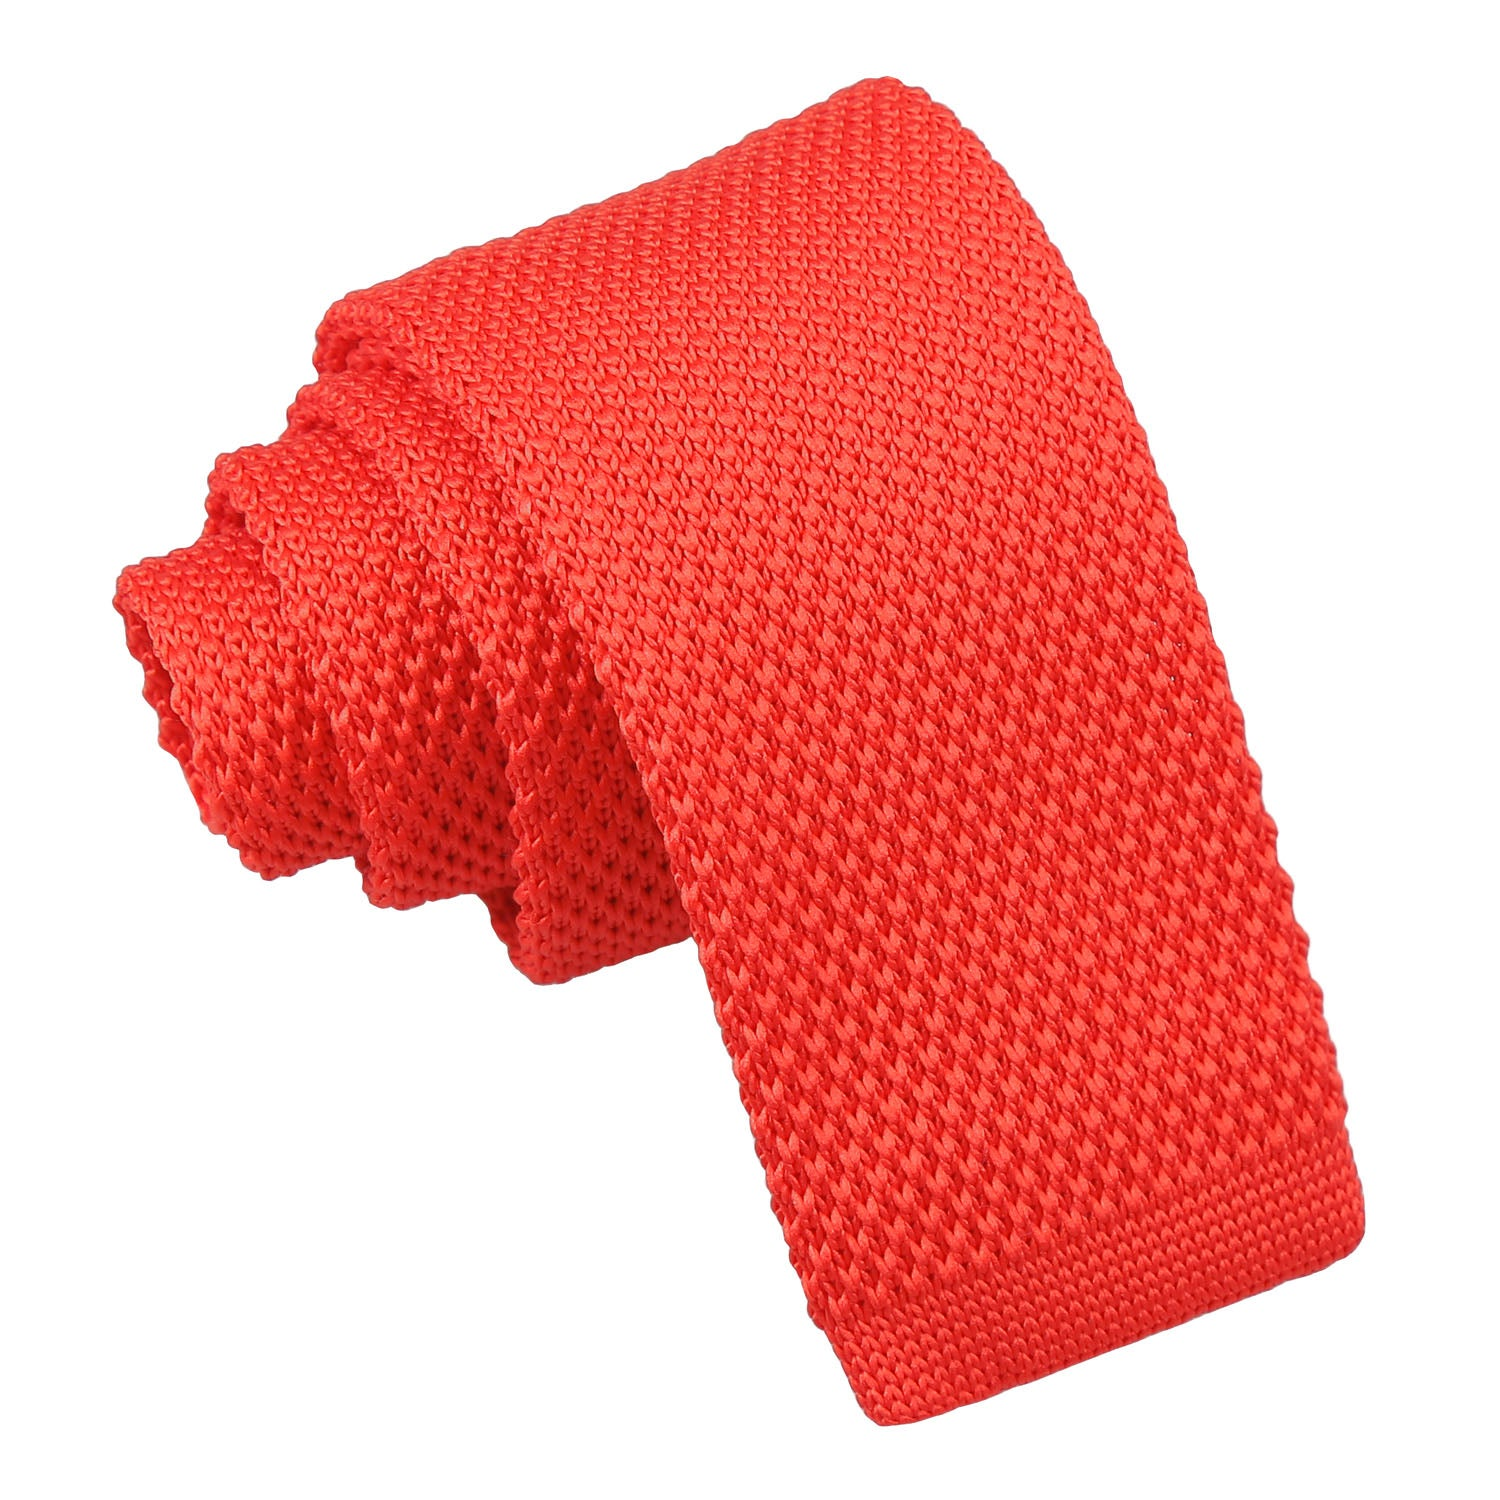 Plain Knitted Tie - Boys - Red, Clothing & Accessories by Low Cost Gifts